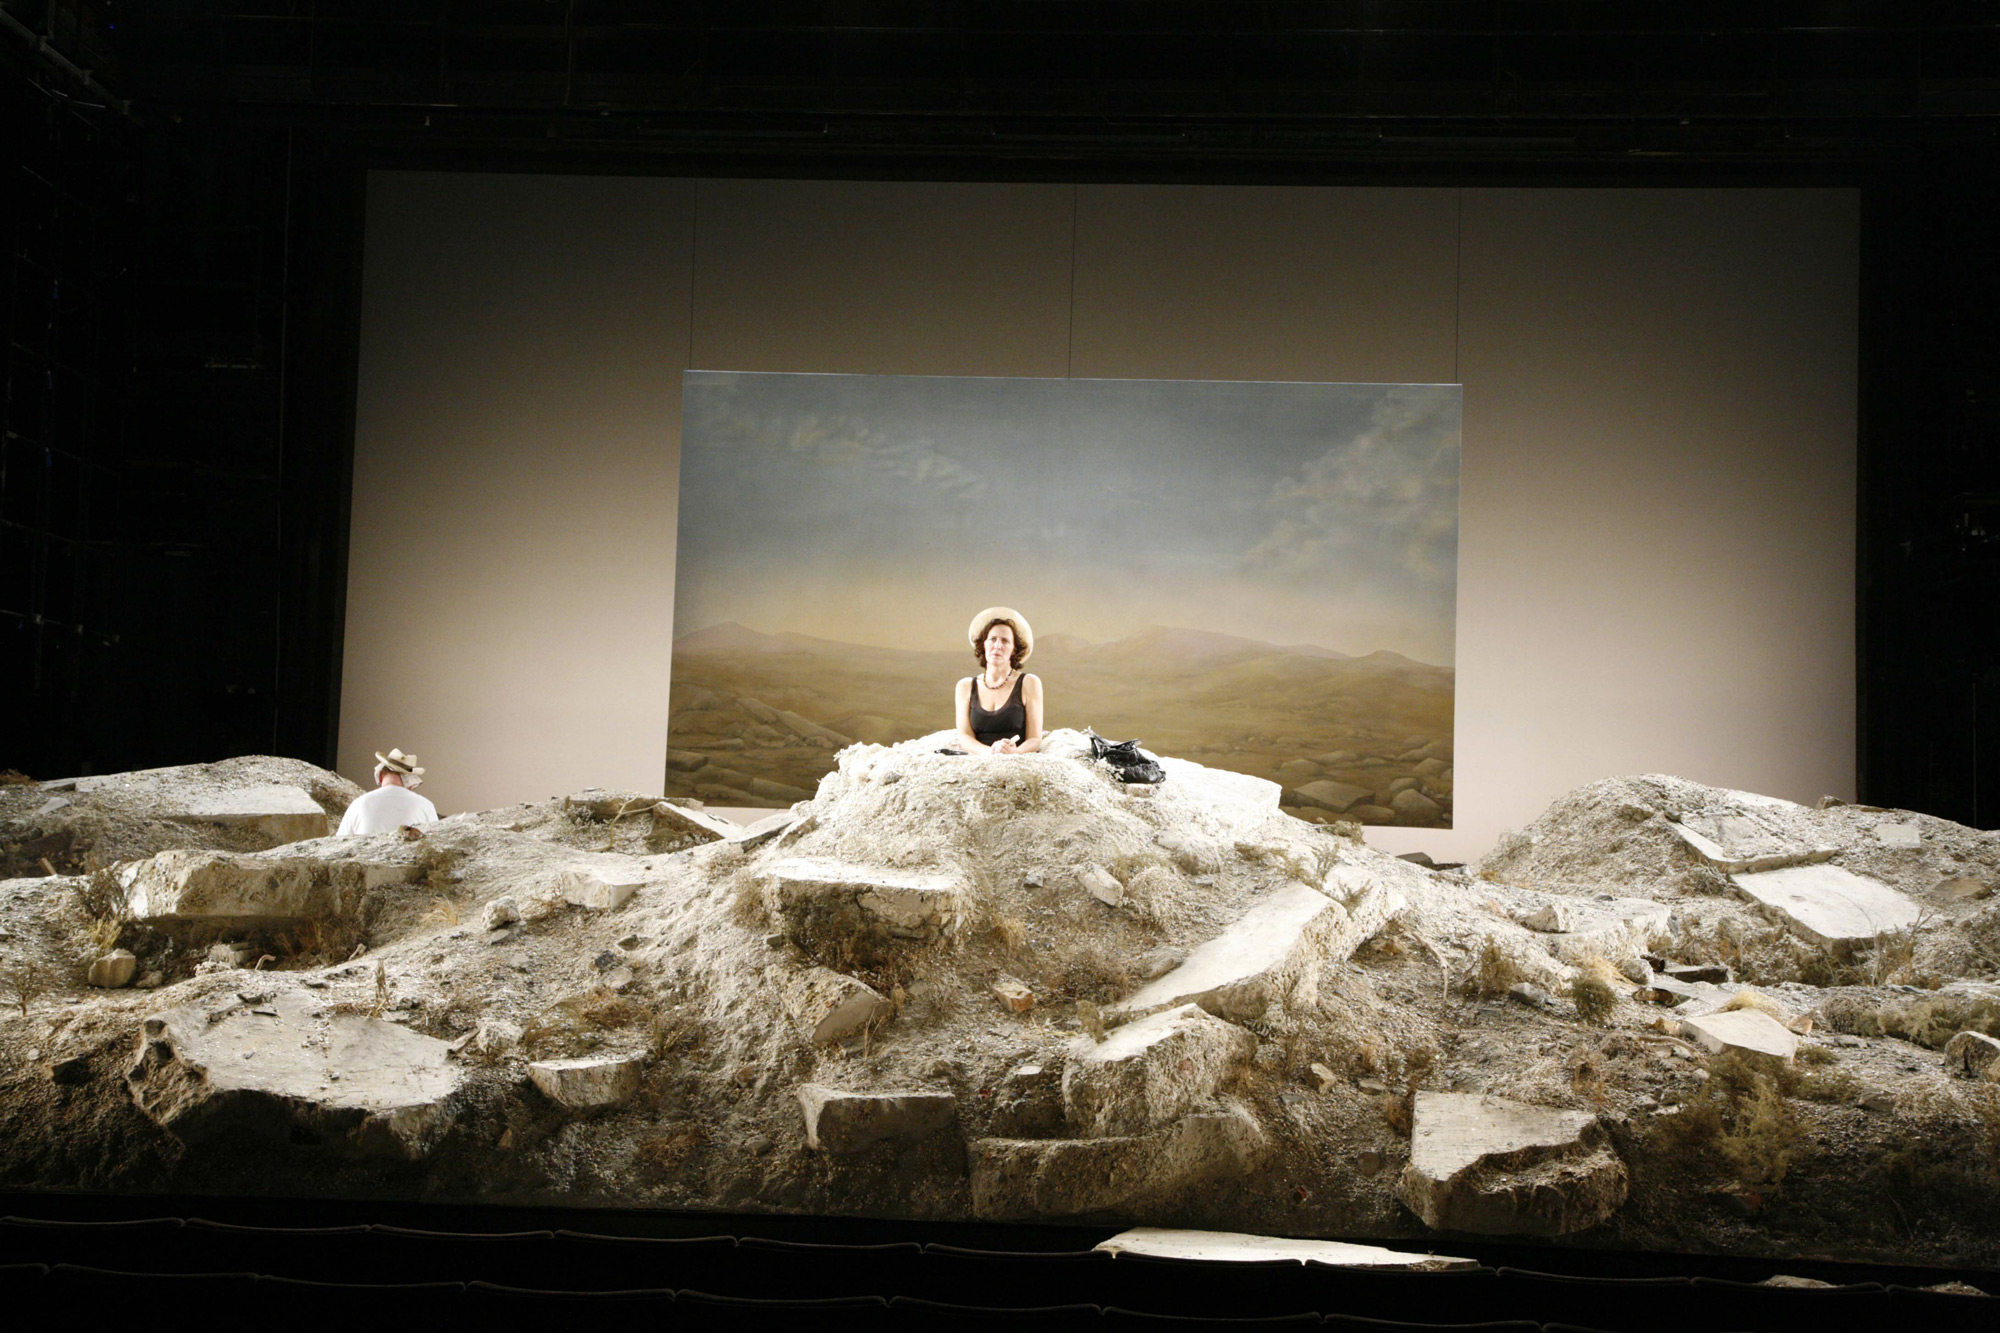 Photographs of Happy Days by Samuel Beckett (2007)